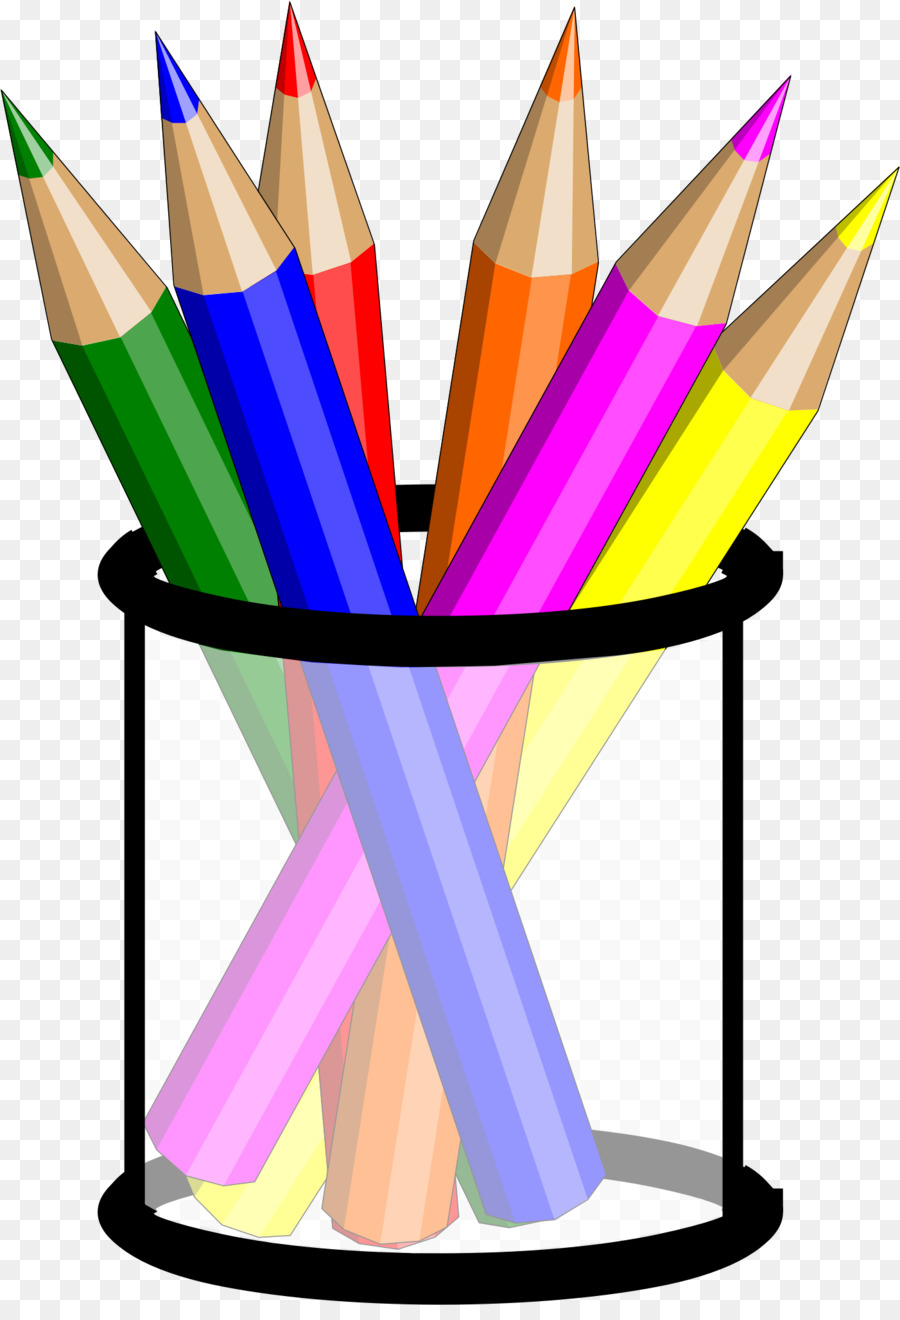 colored pencil drawing clip art crayons png download 1402 2033 rh kisspng com colored pencils clipart colored pencils clipart black and white